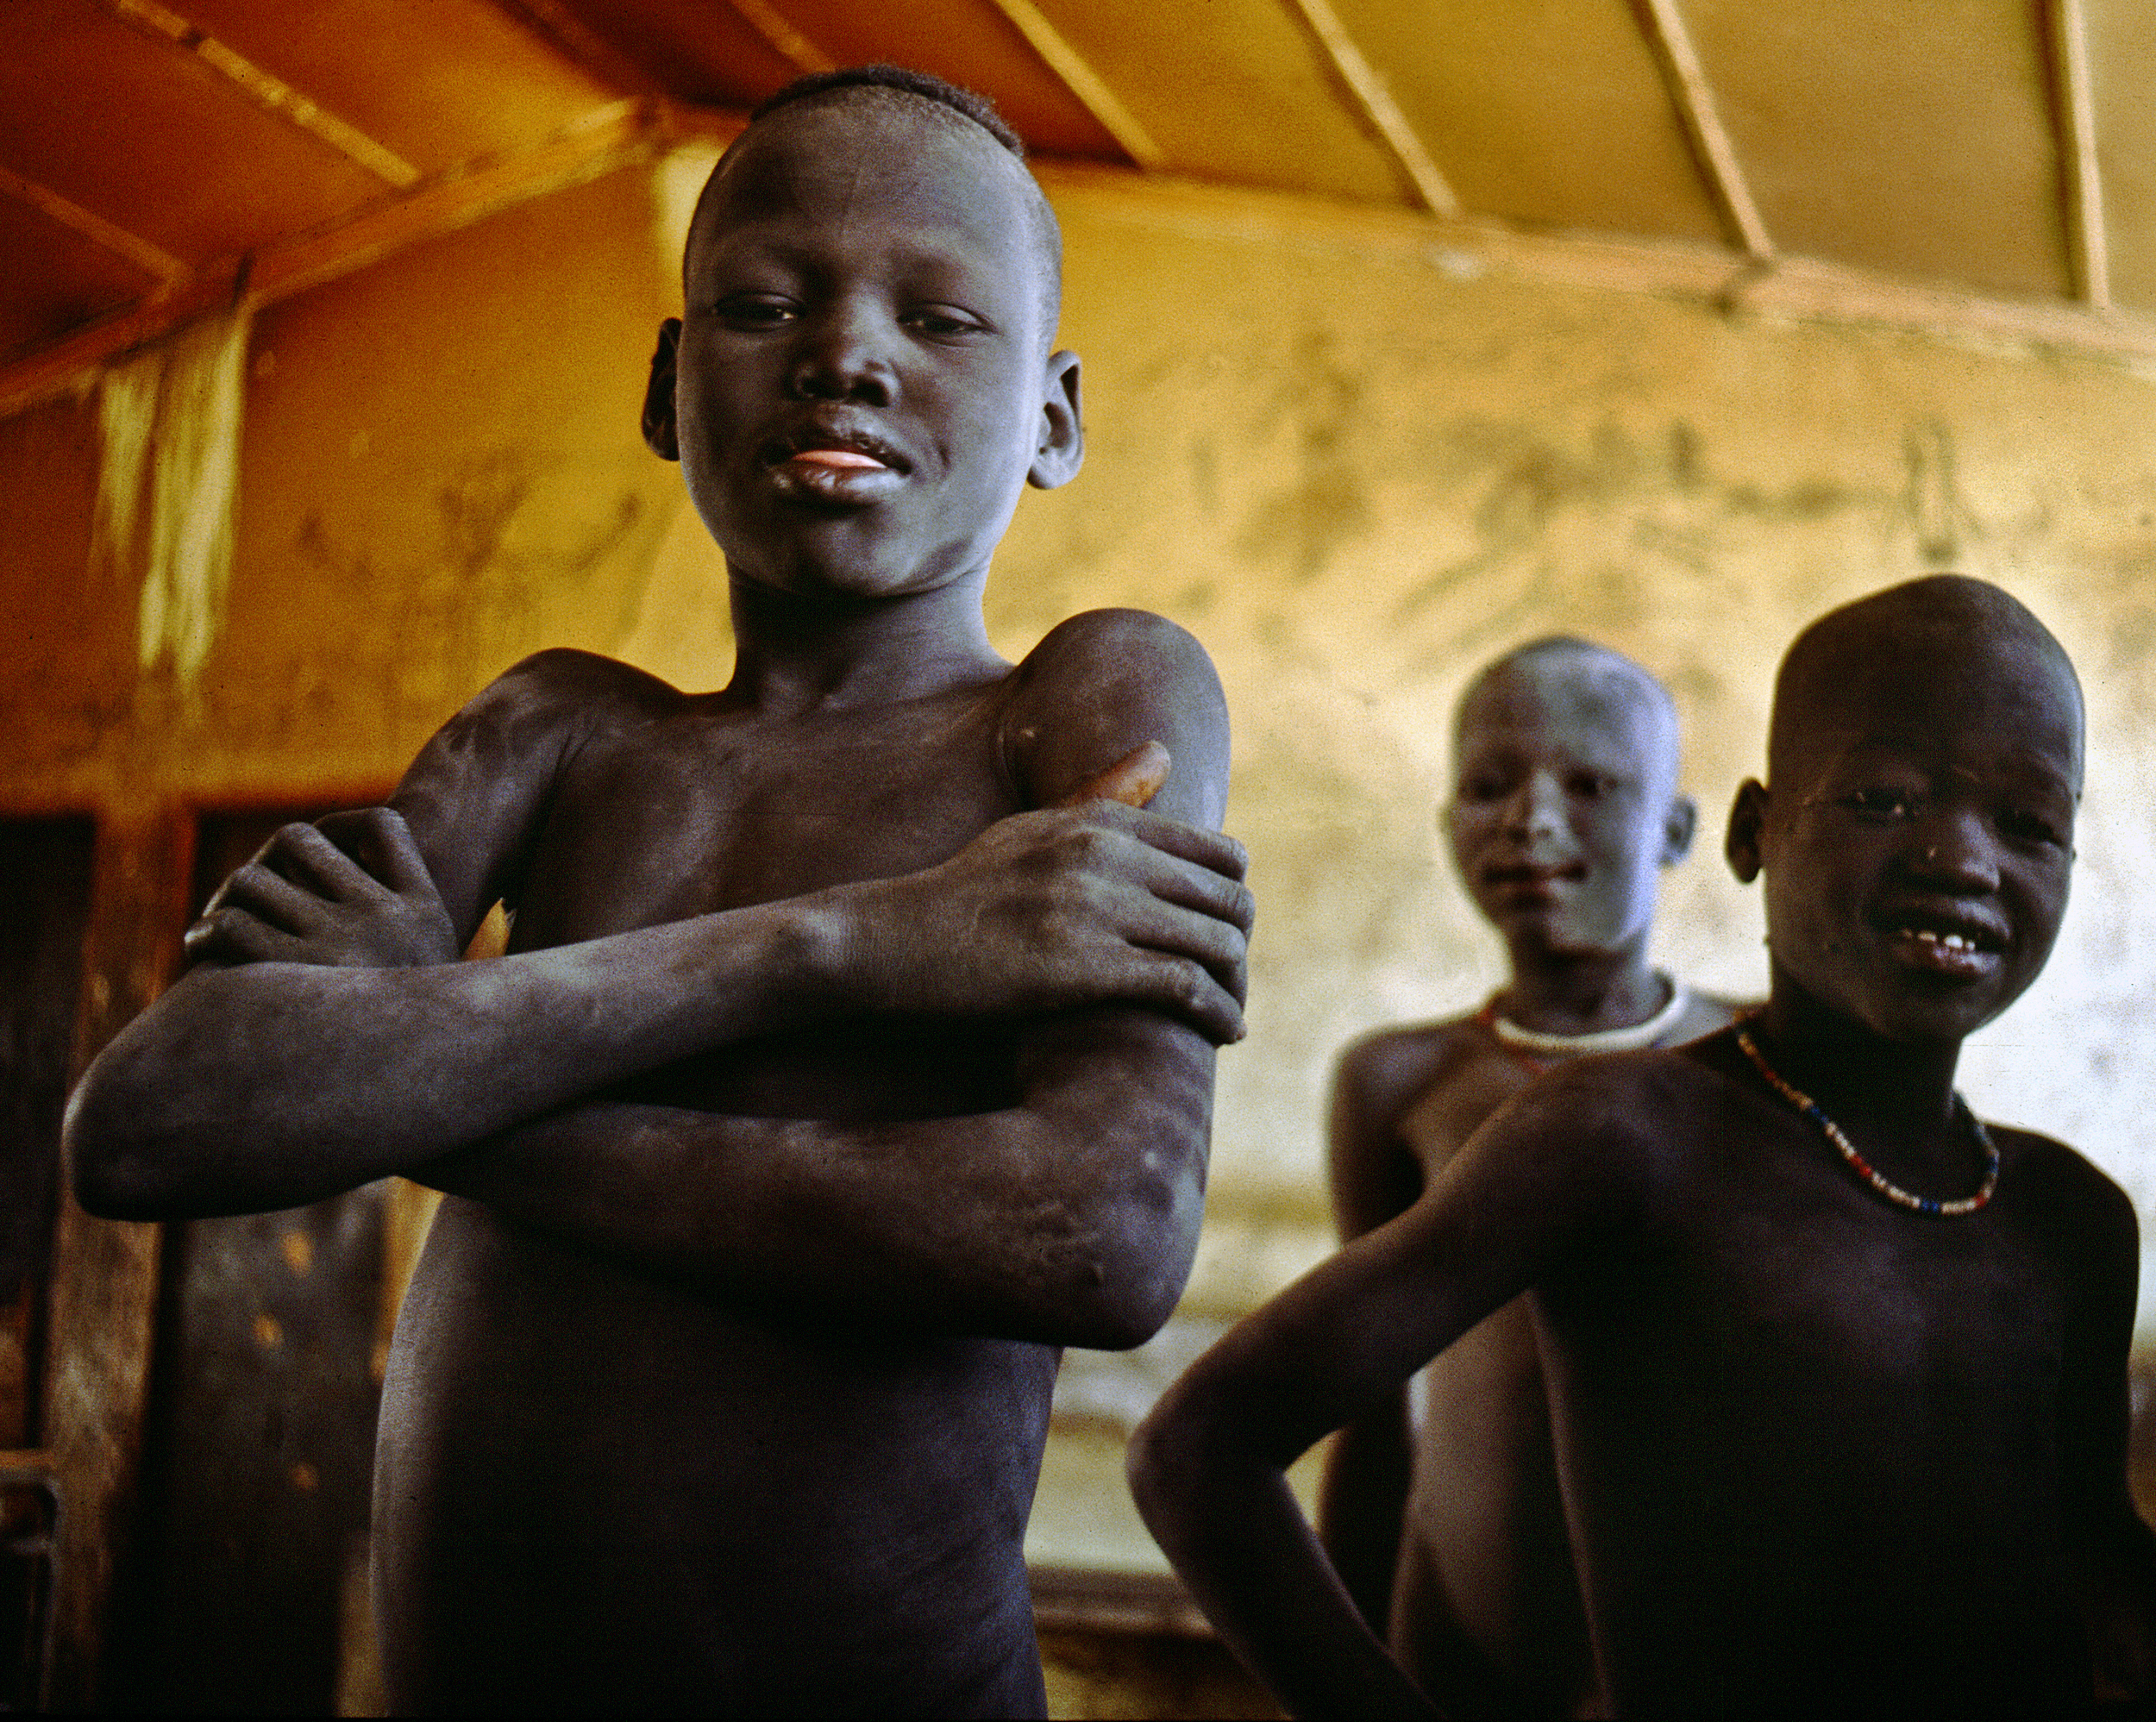 Dinka youth, South Sudan II